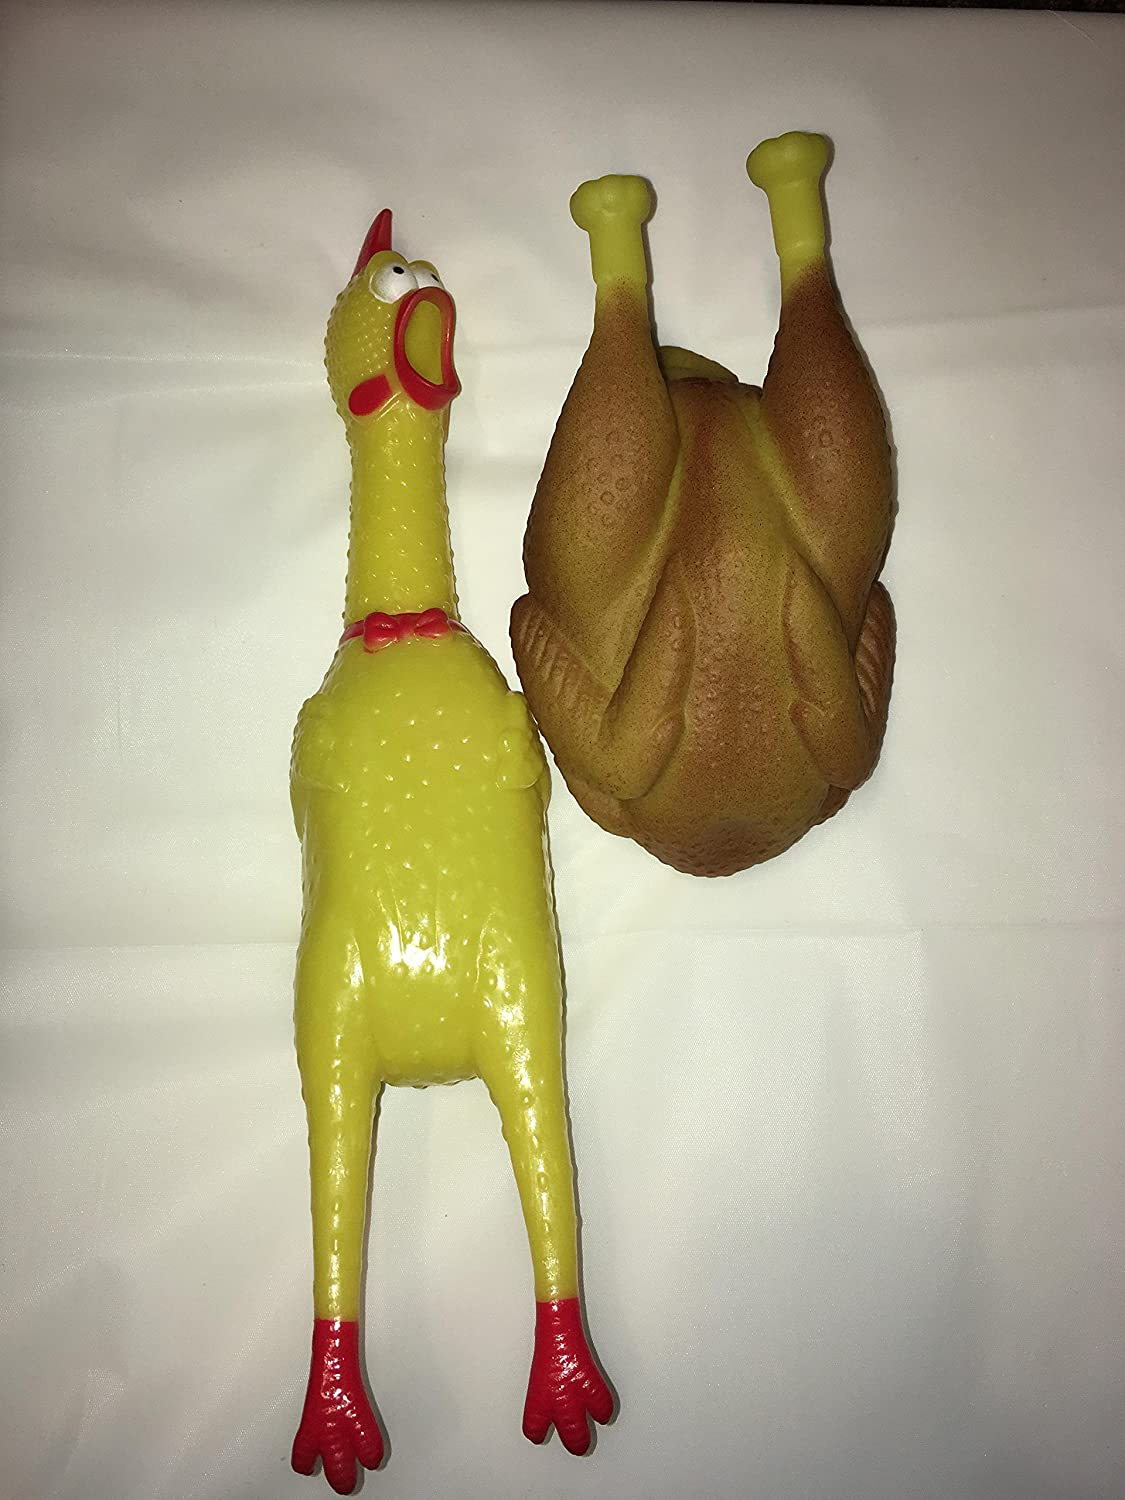 Squeaky Chicken Dog Chew Toys: 2 Items - Fun & Durable Squeaky Fetch Playtime & Appetizing Full Sized Chicken & 1 Large Roasted Chicken / Turkey Perfect for Medium & Large Sized Dogs